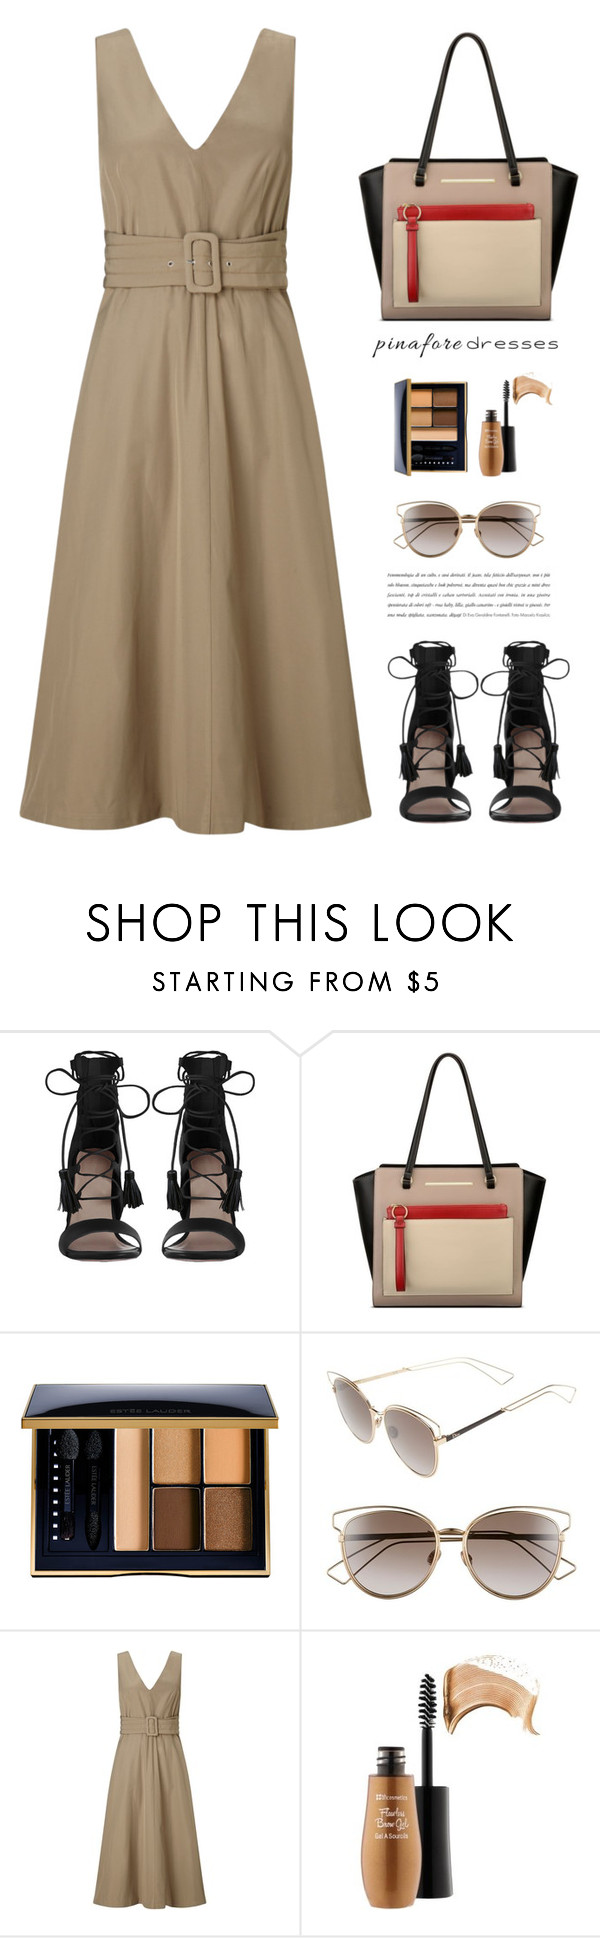 """Pinafores dress"" by yexyka ❤ liked on Polyvore featuring Zimmermann, Anne Klein, Estée Lauder, Christian Dior, pinafores and 60secondstyle"